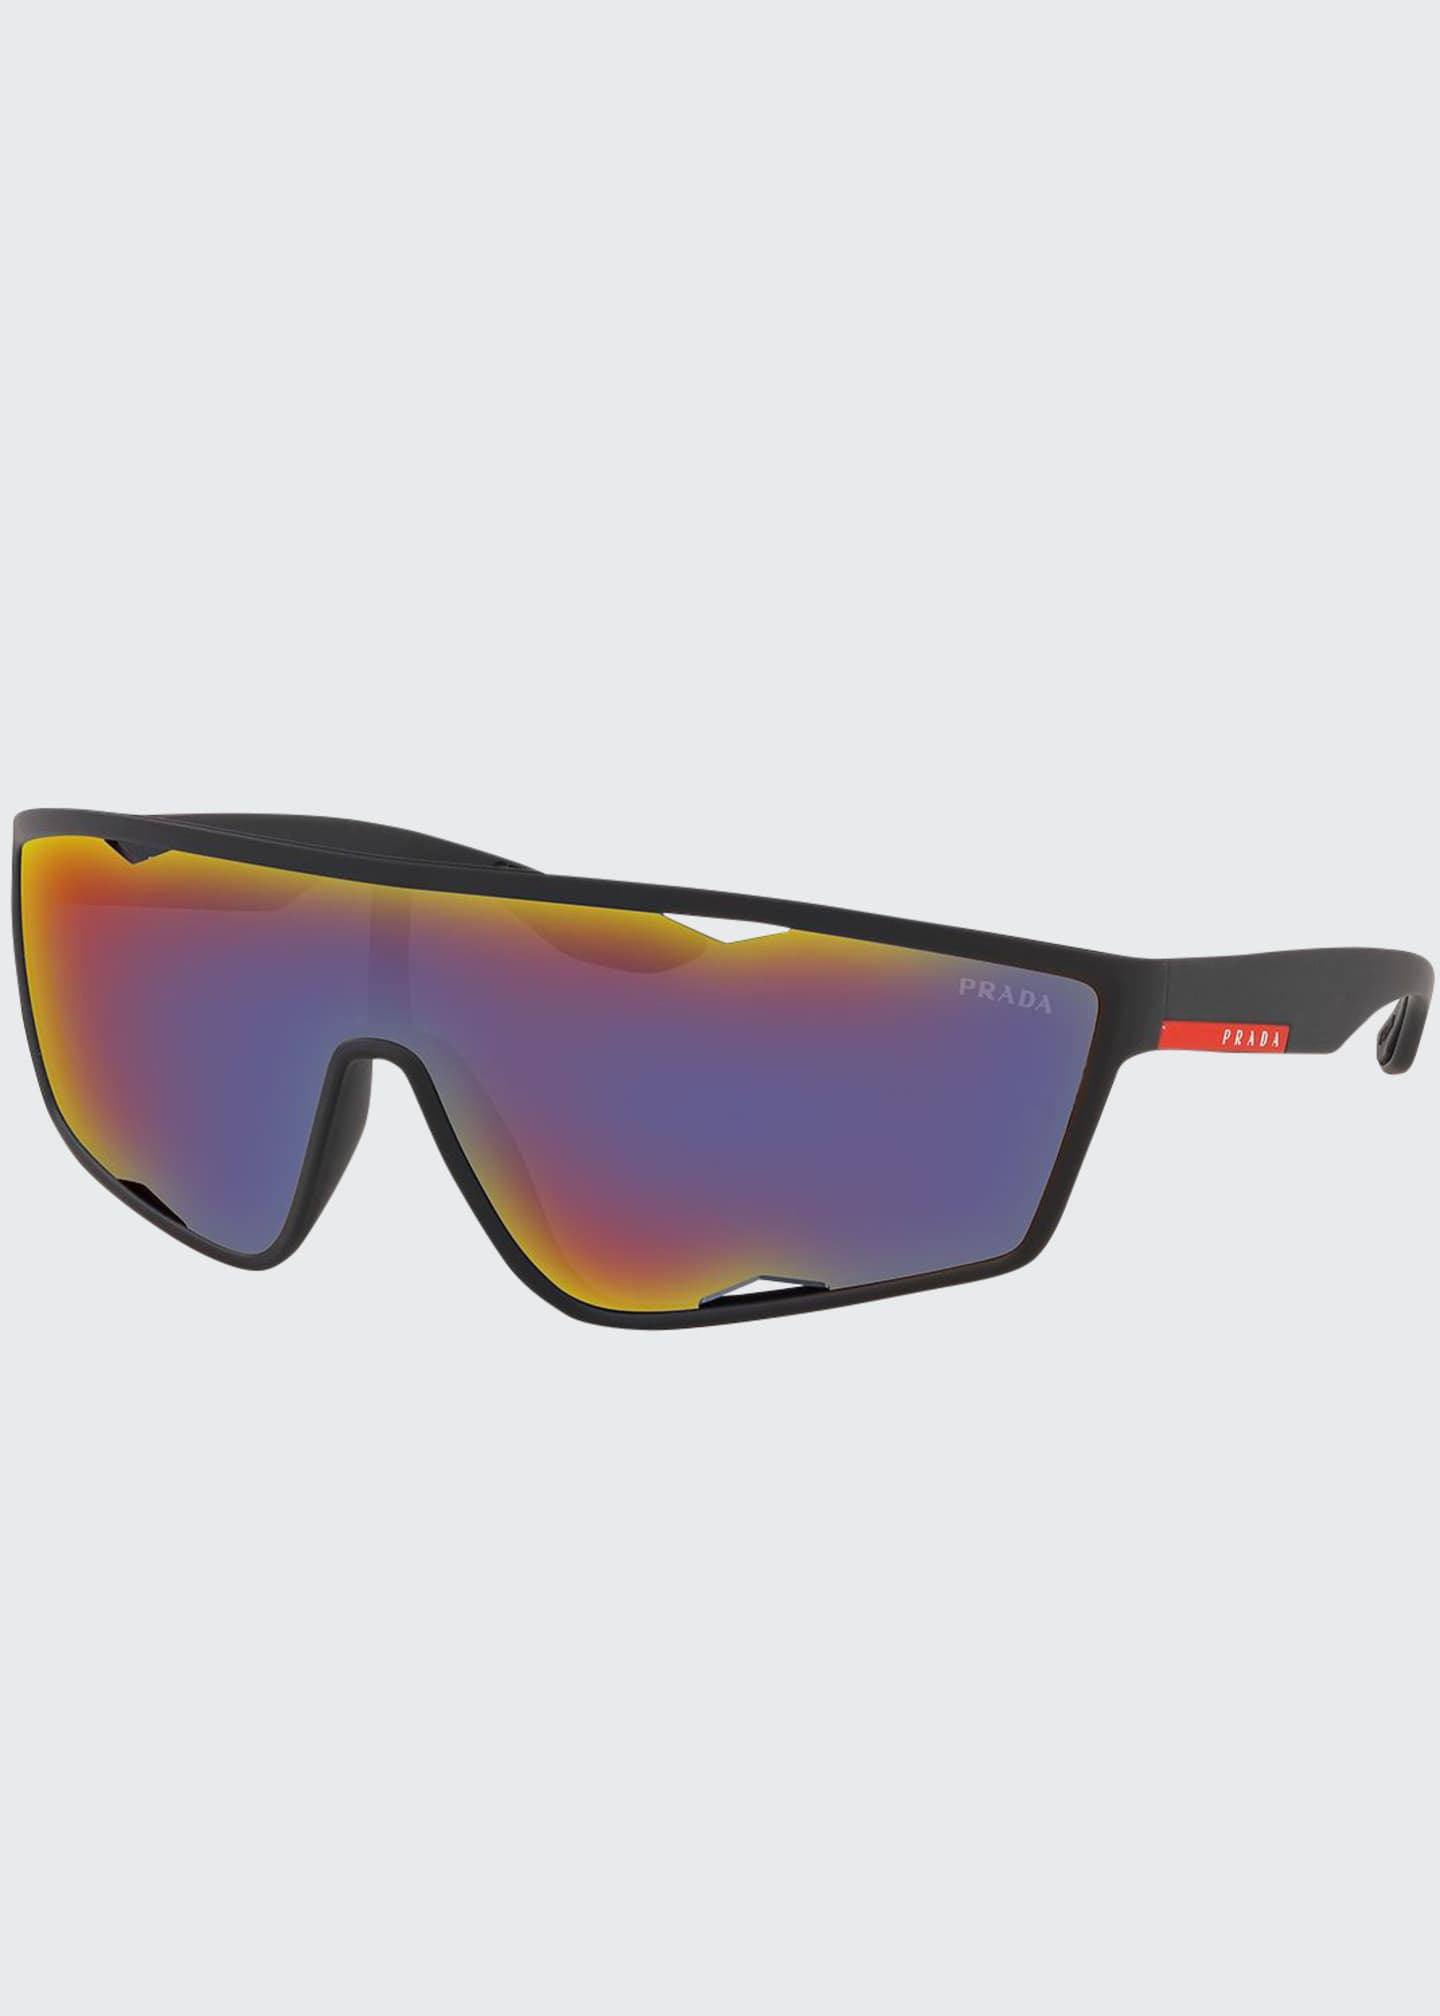 Prada Men's Active Style Sunglasses